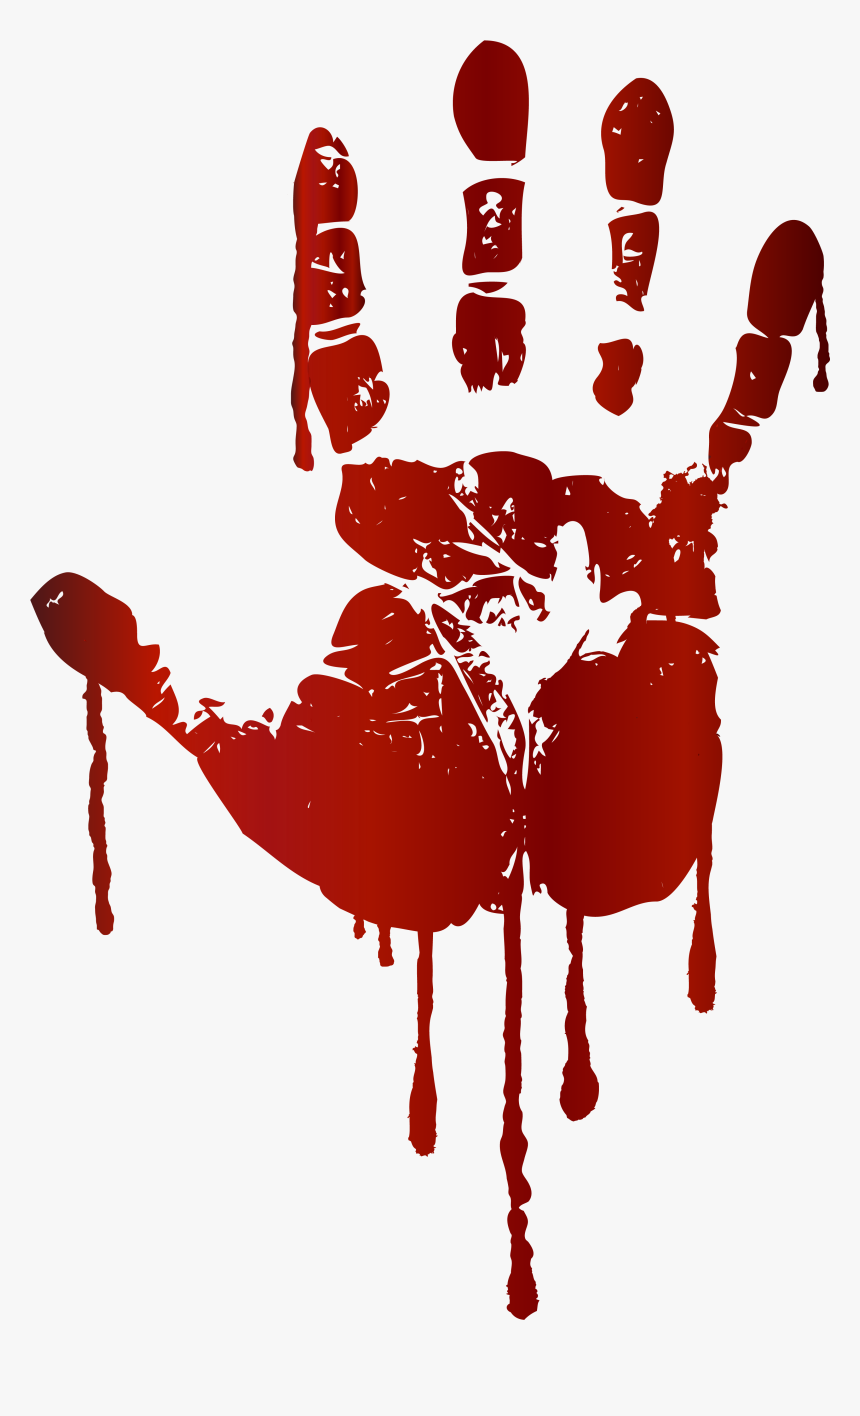 Transparent Hand Print Png - Hand Print, Png Download, Free Download